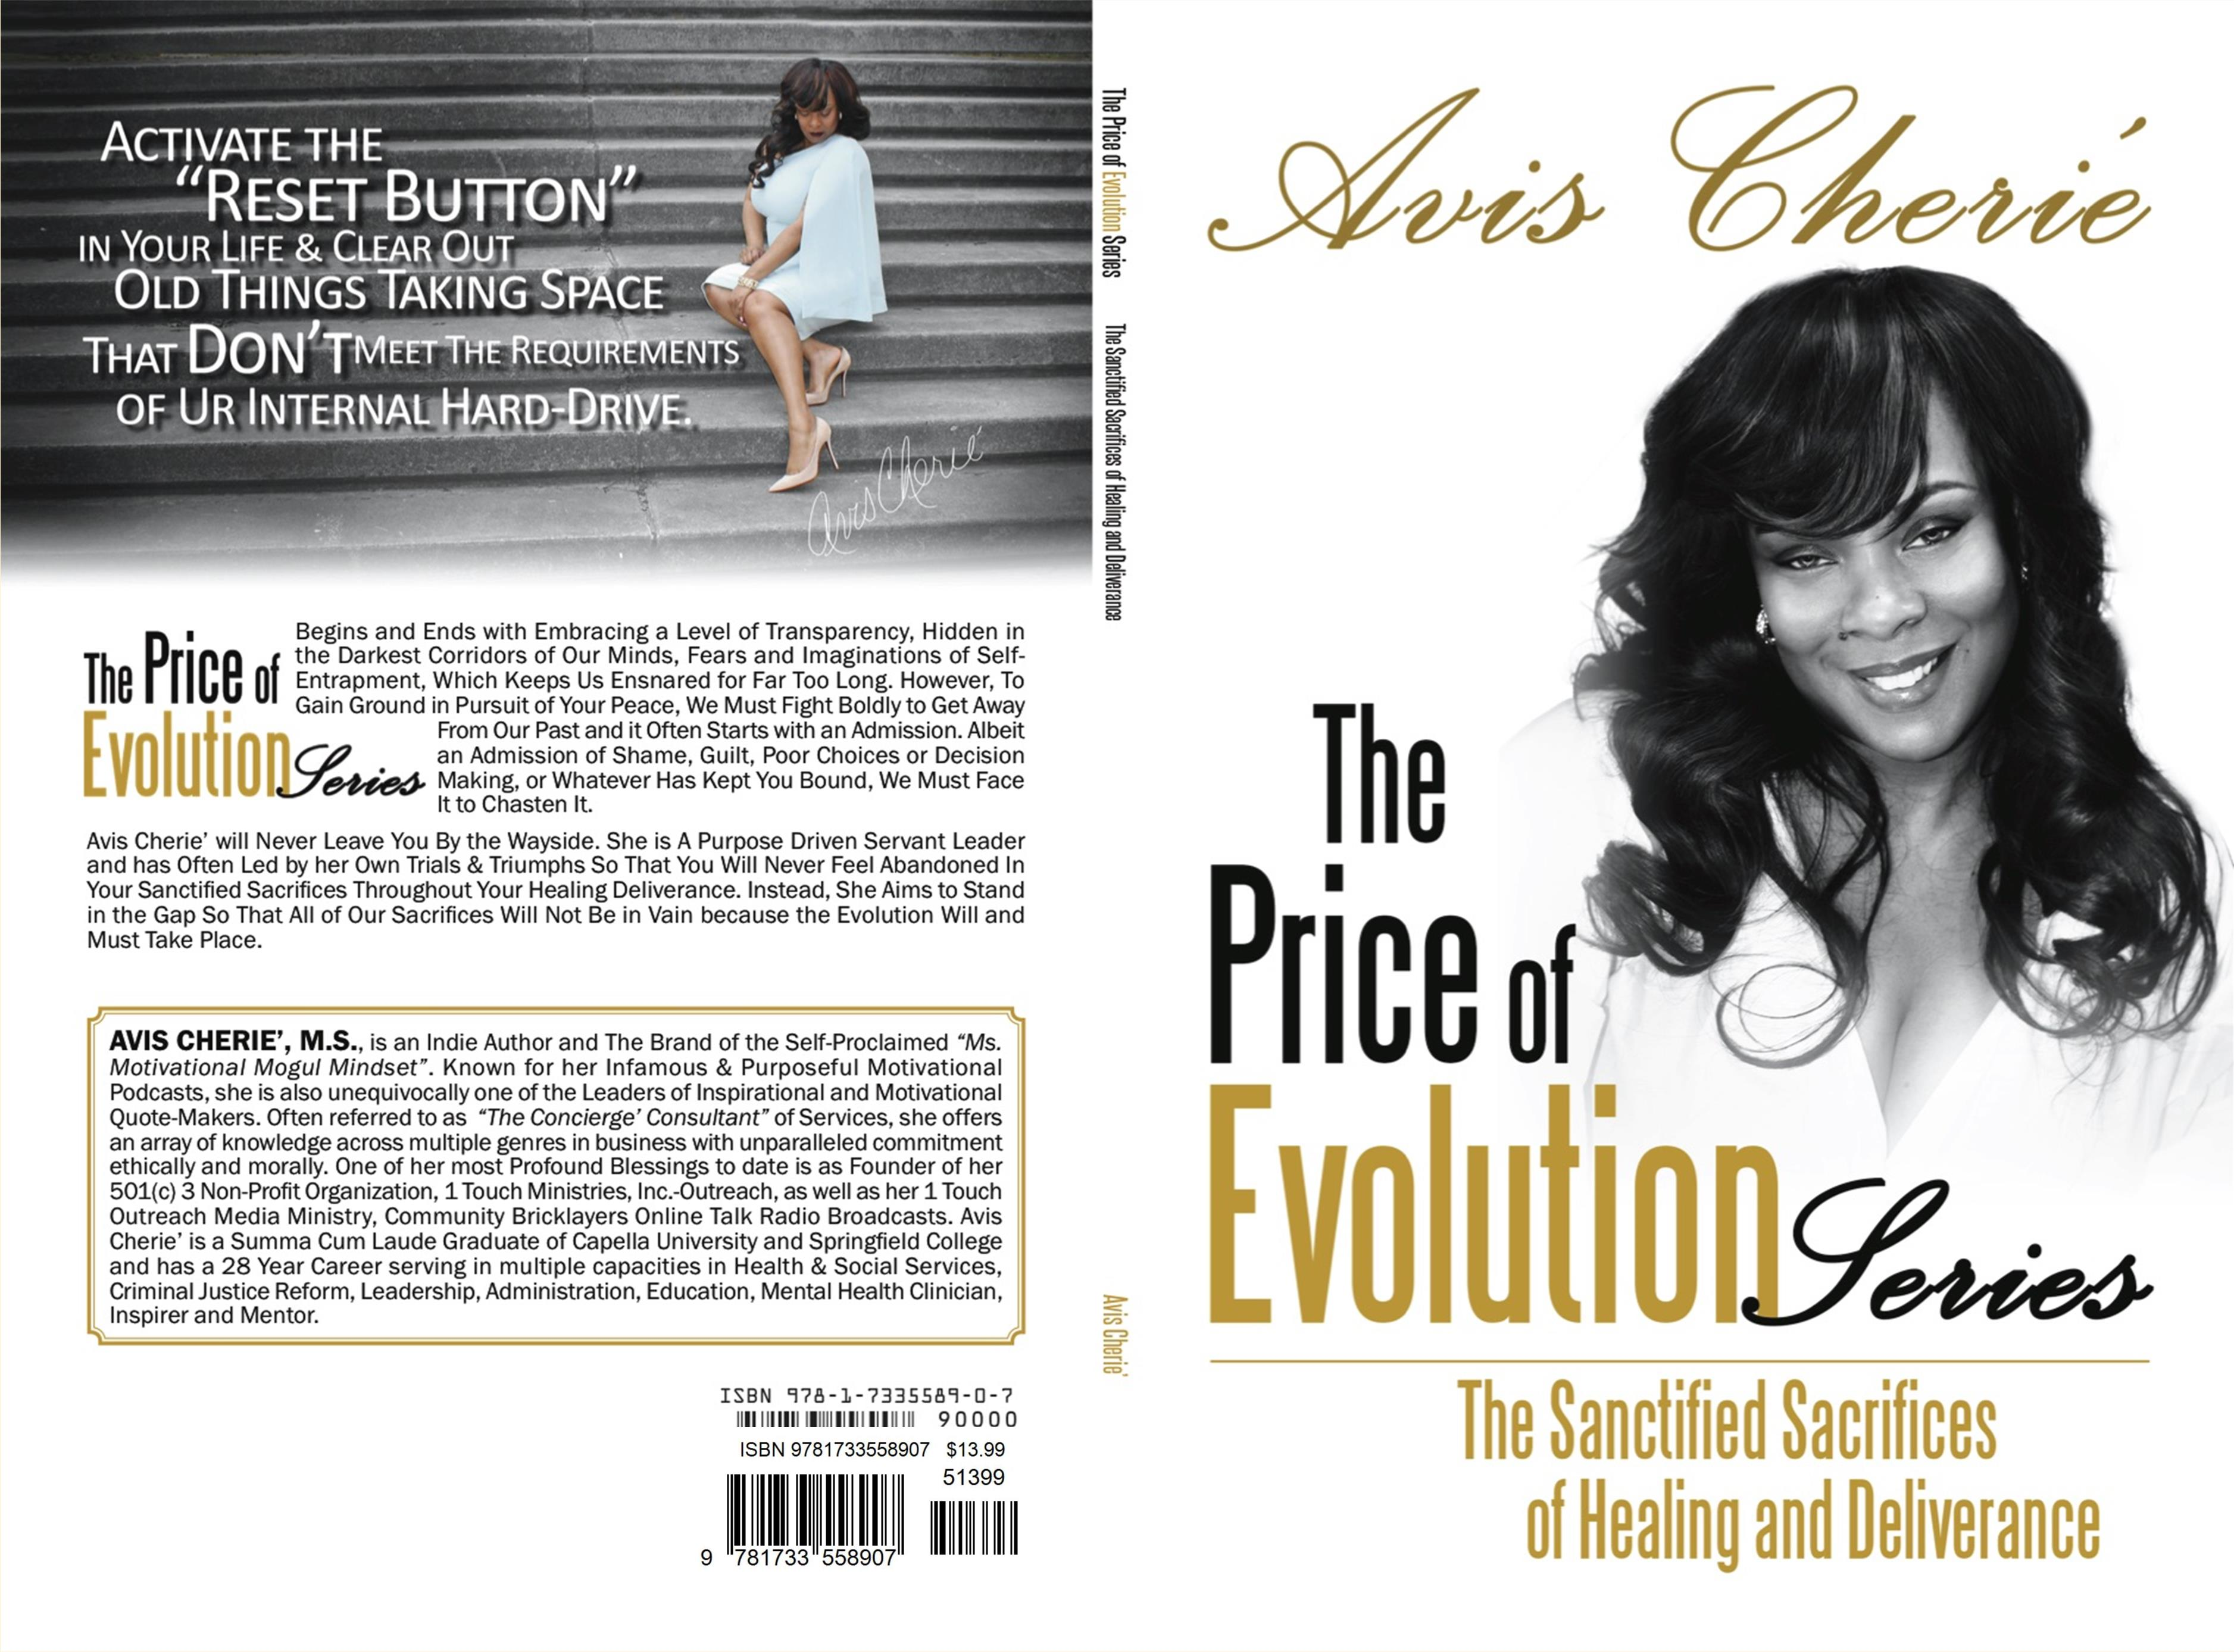 The Price of Evolution Series: The Sanctified Steps to Healing and Deliverance cover image